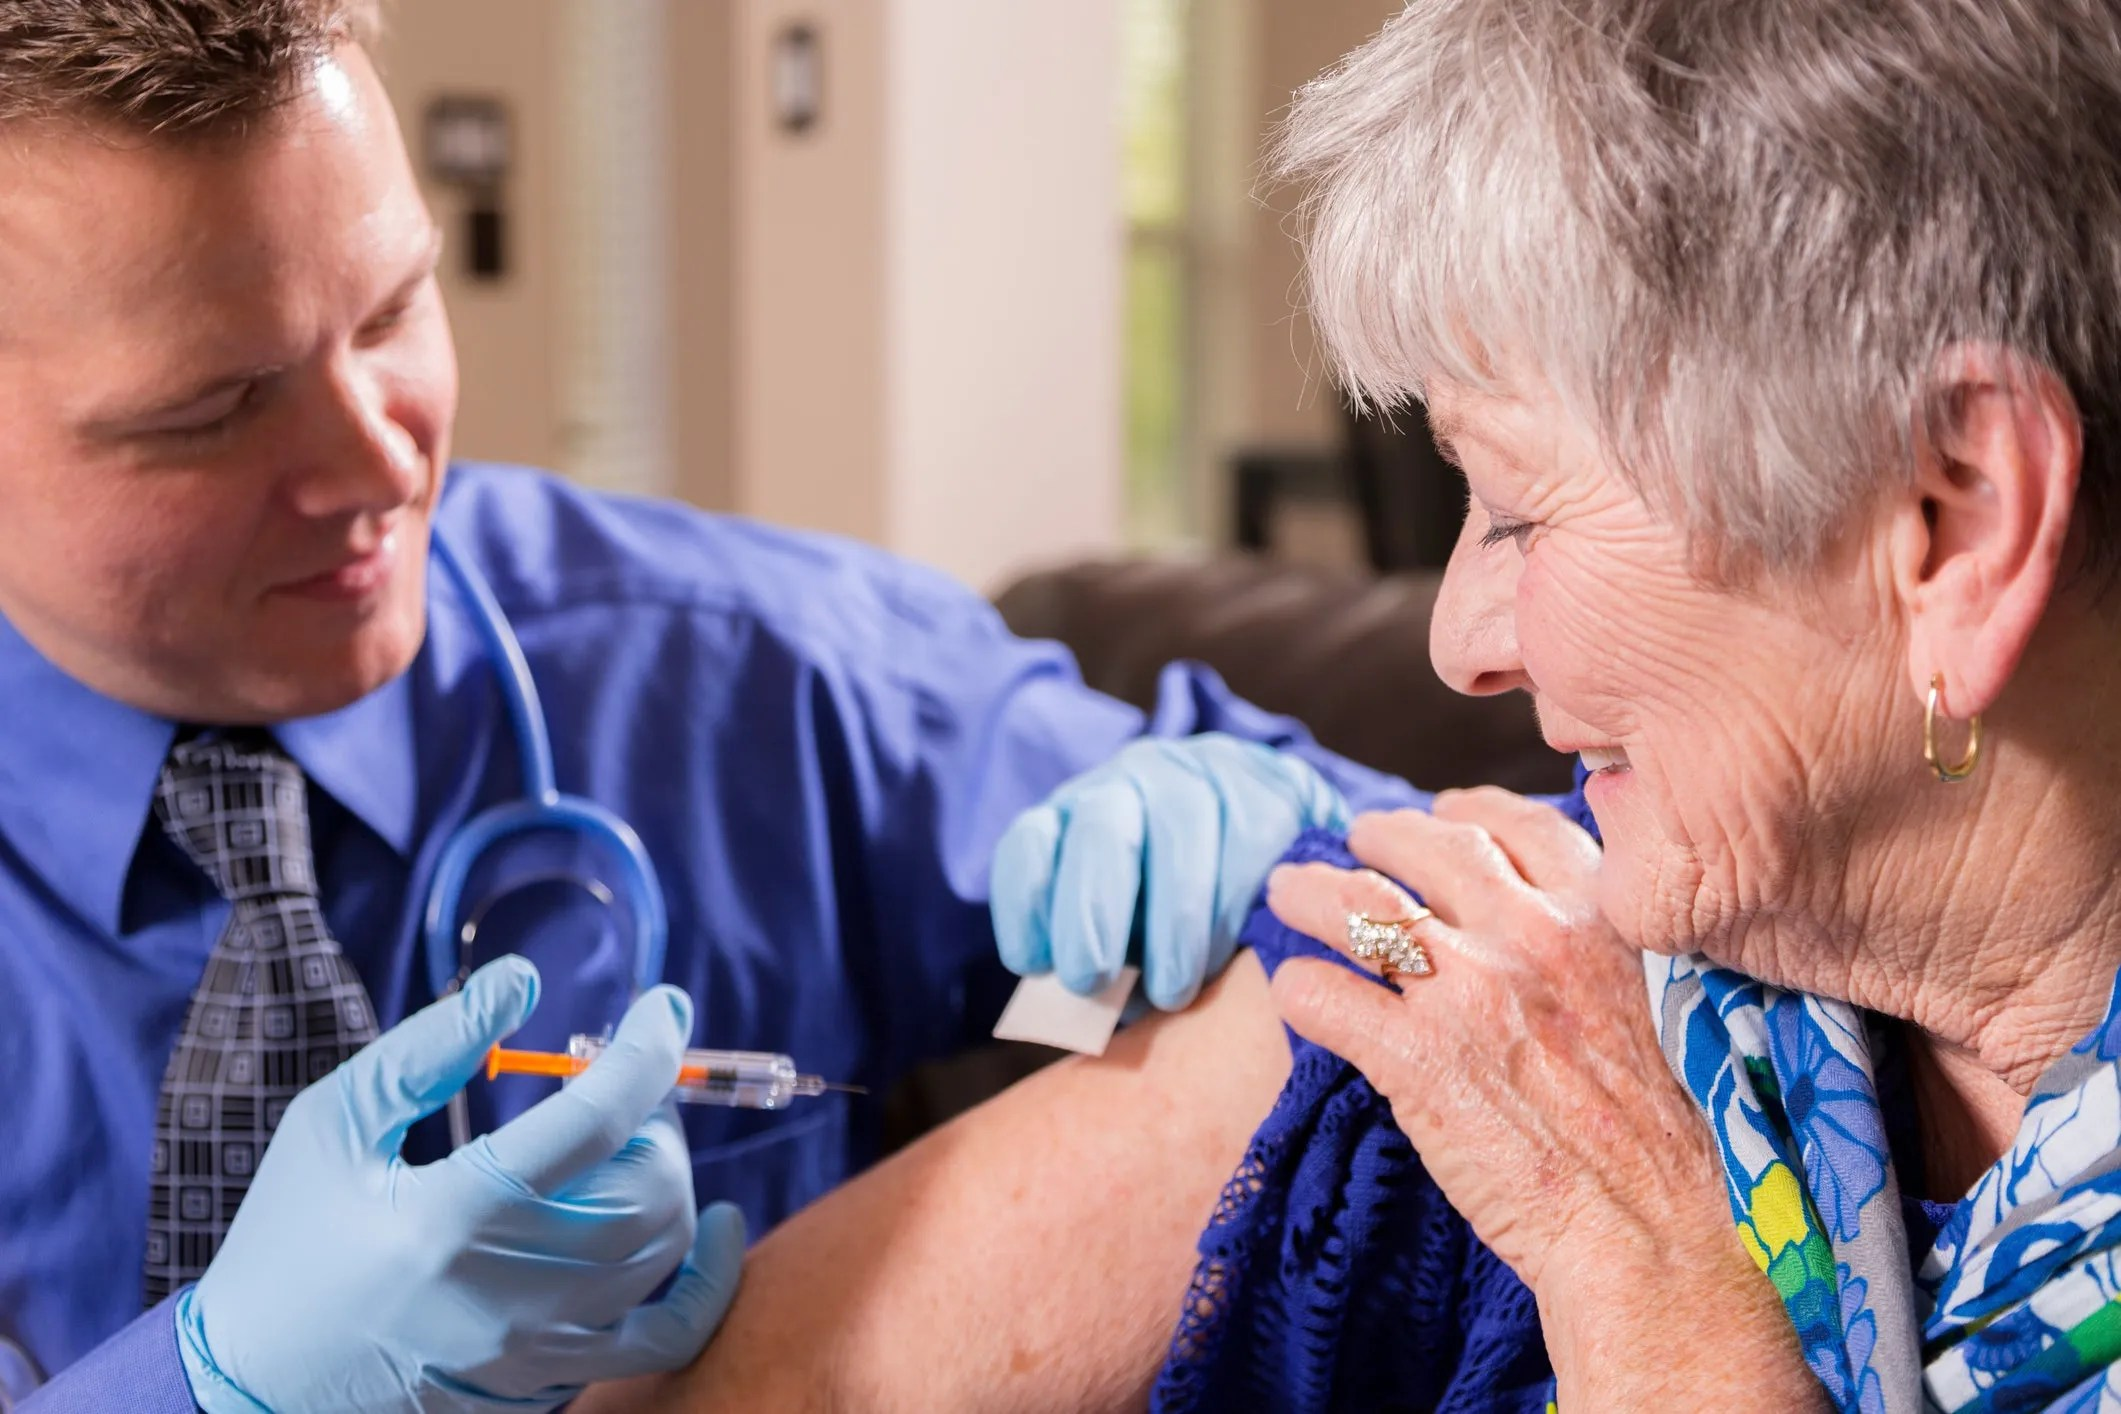 A physician administering a vaccine into the arm of an elderly woman.